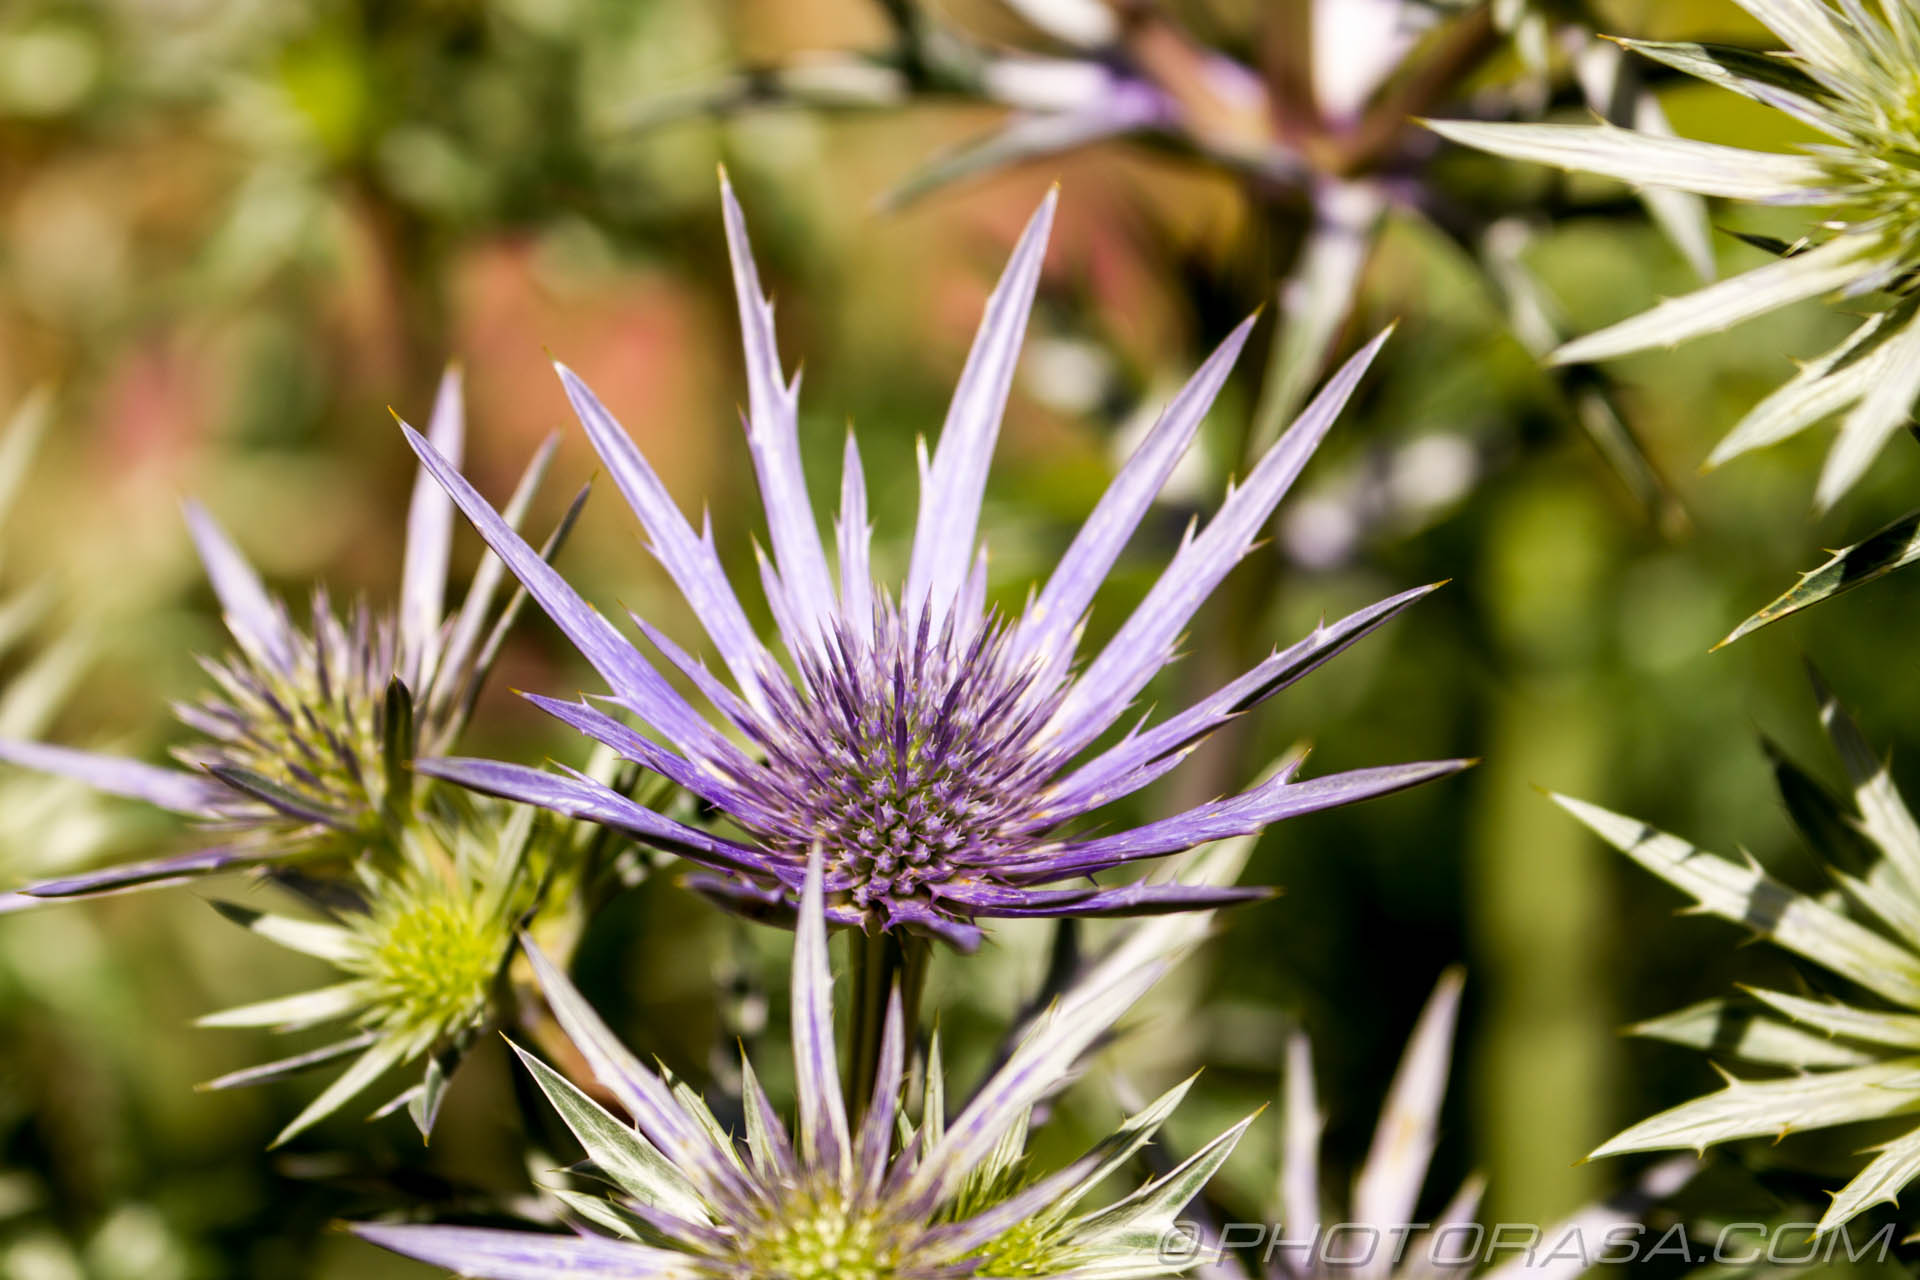 http://photorasa.com/nature/strange-exotic-flowers/attachment/spiky-flower-thistles/